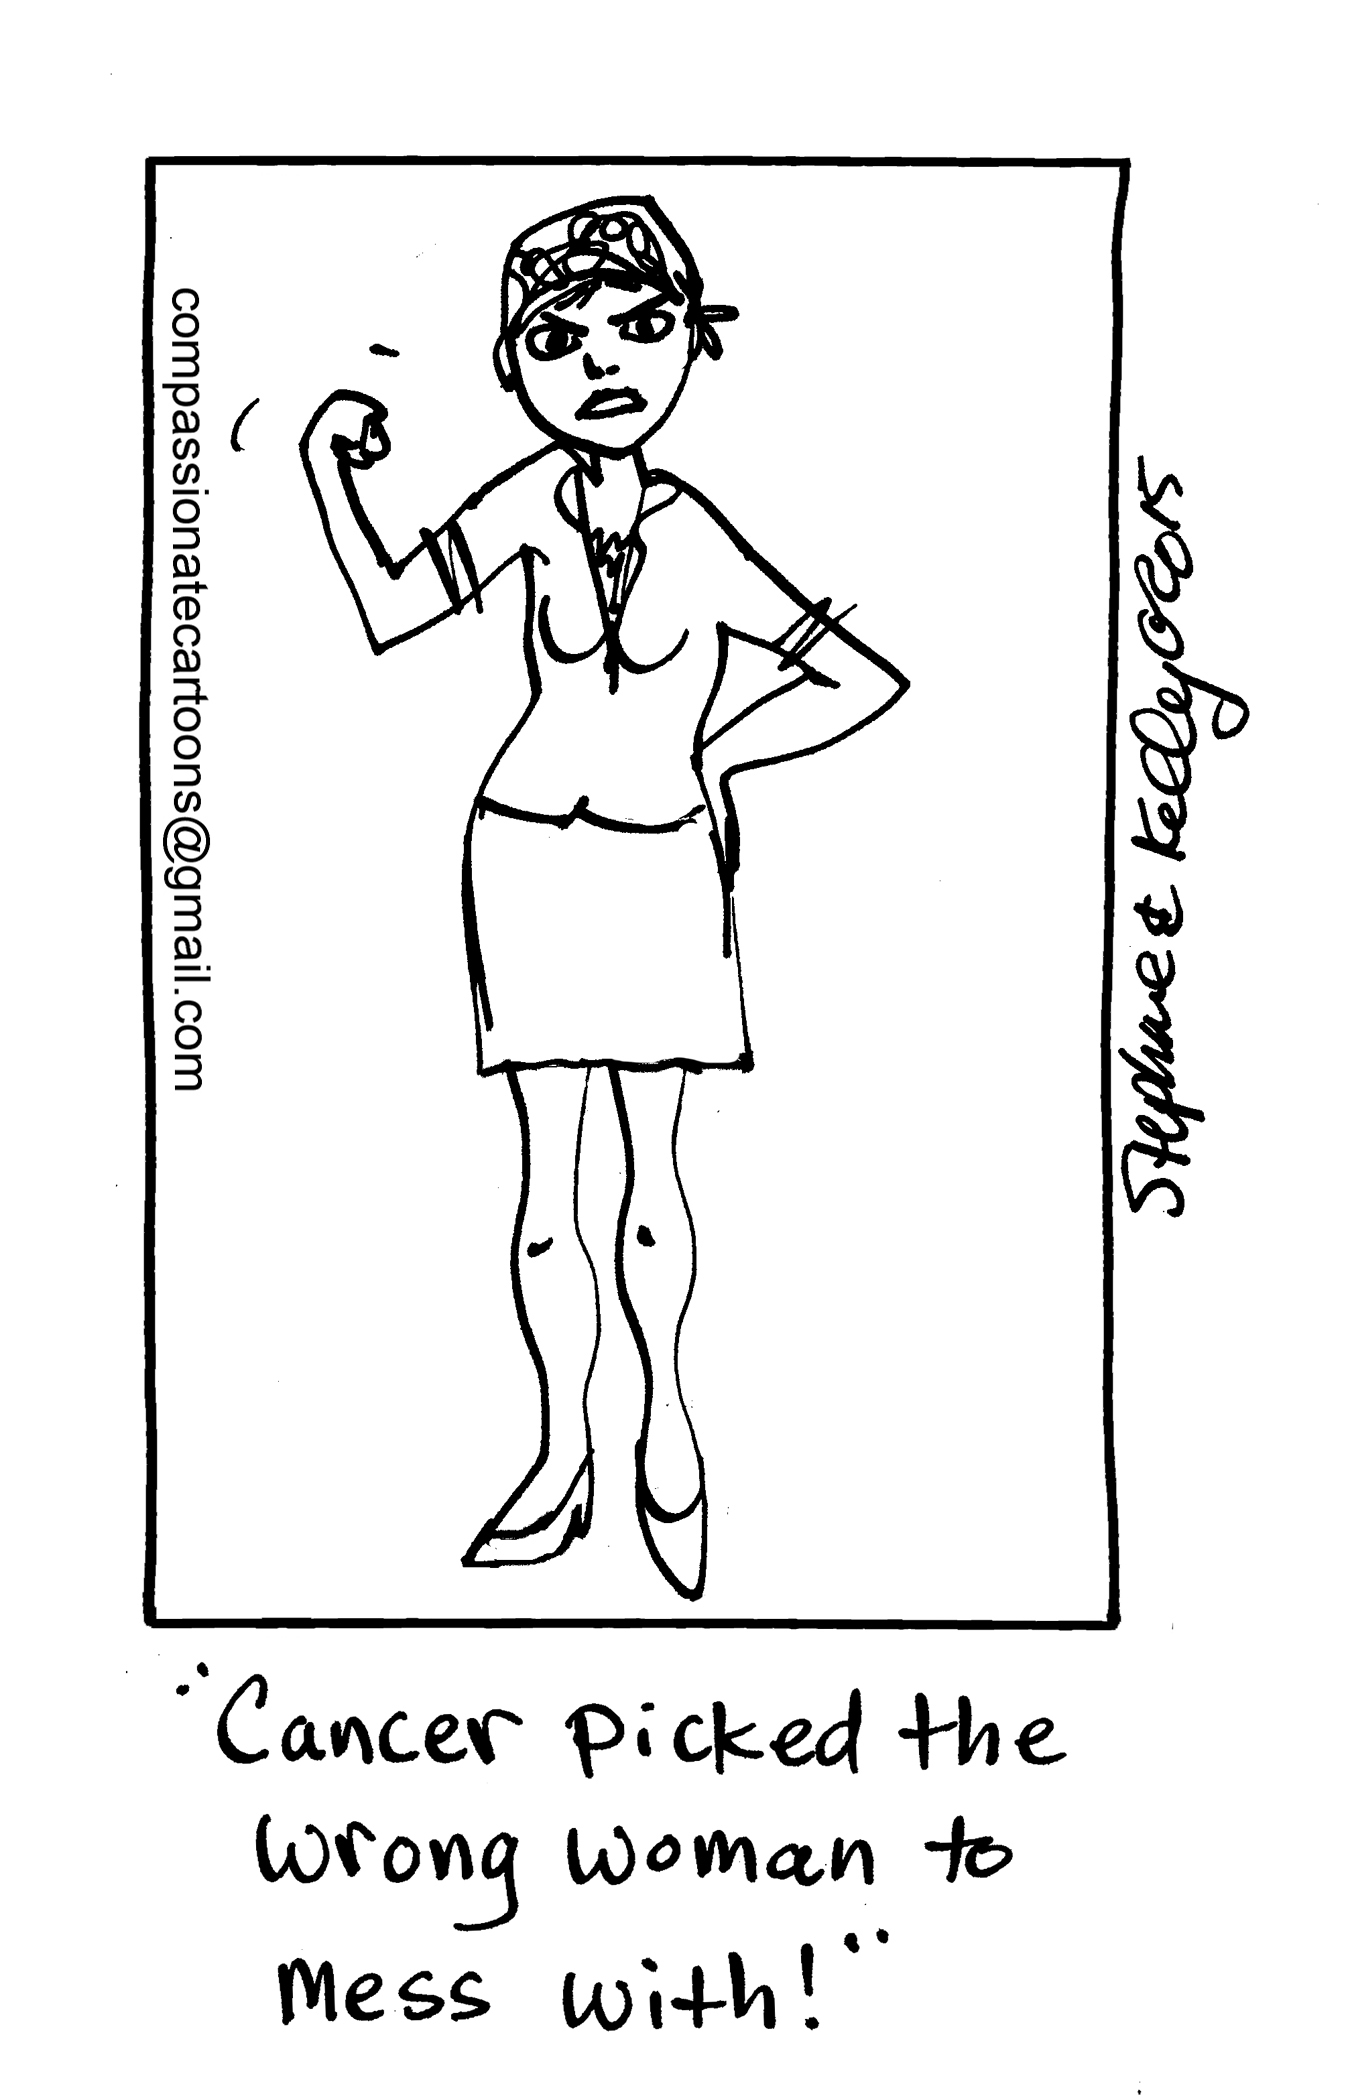 Cartoon depicting a woman fighting cancer